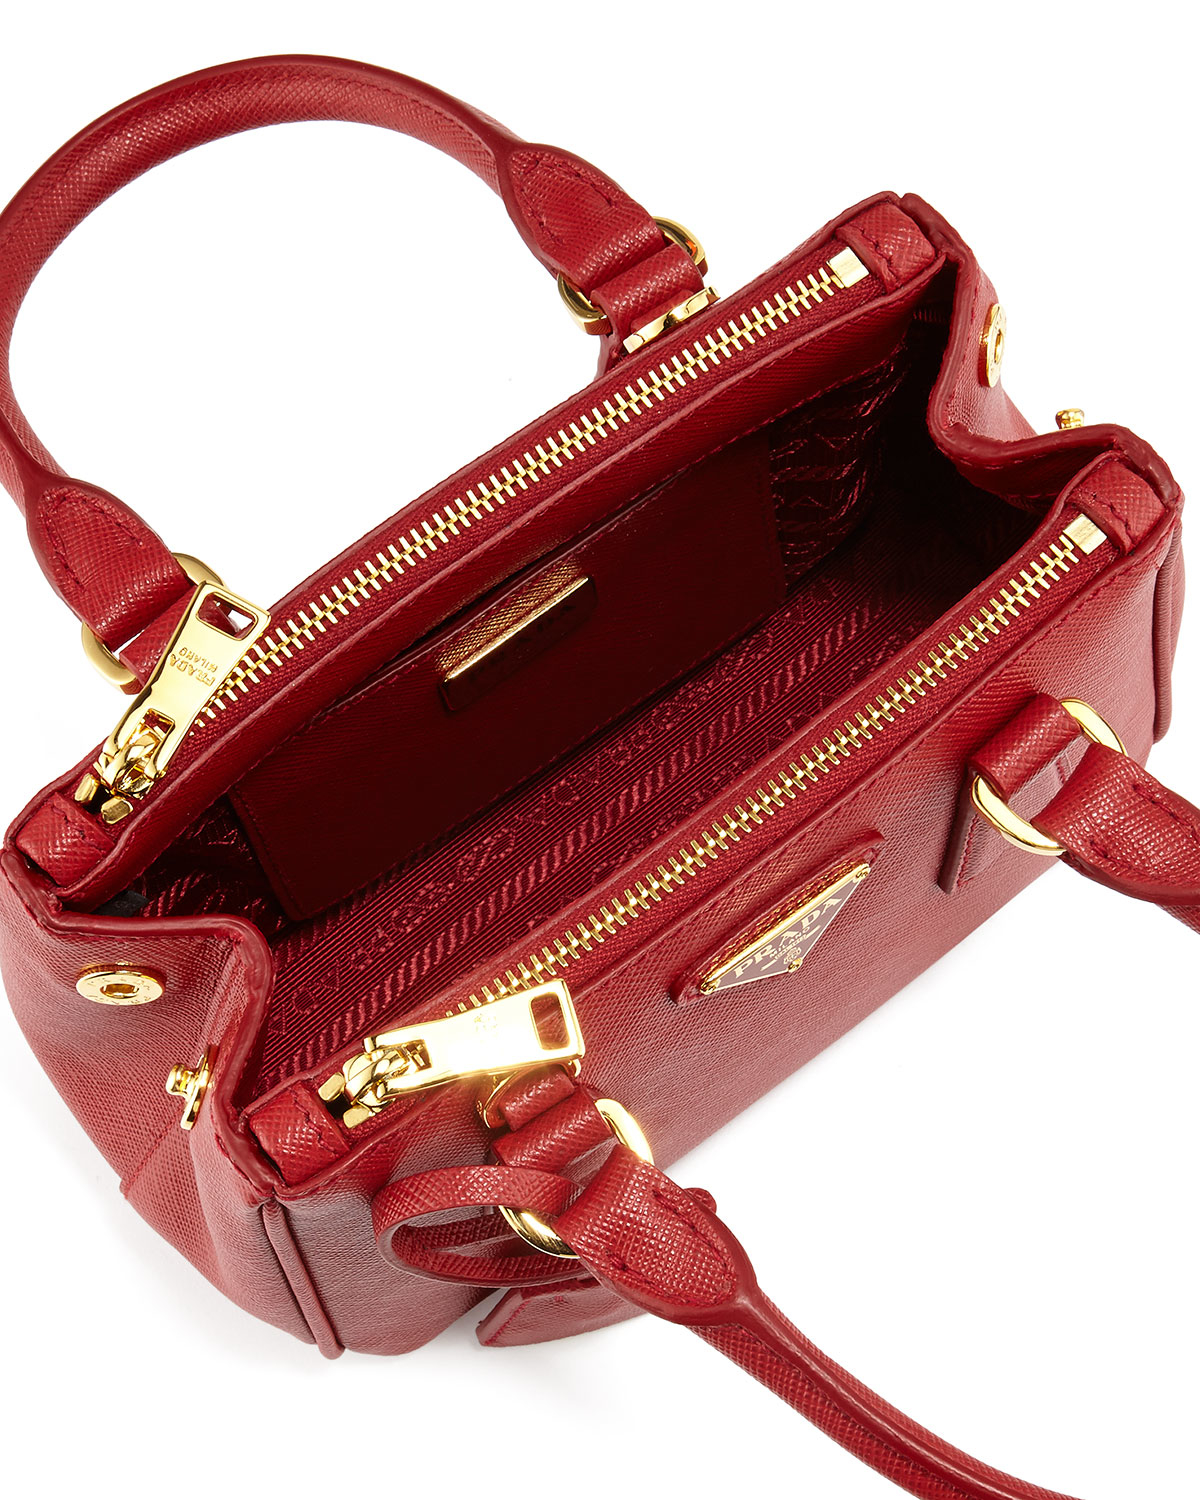 9e3260327e22 ireland red leather prada handbag a04da c7c0b